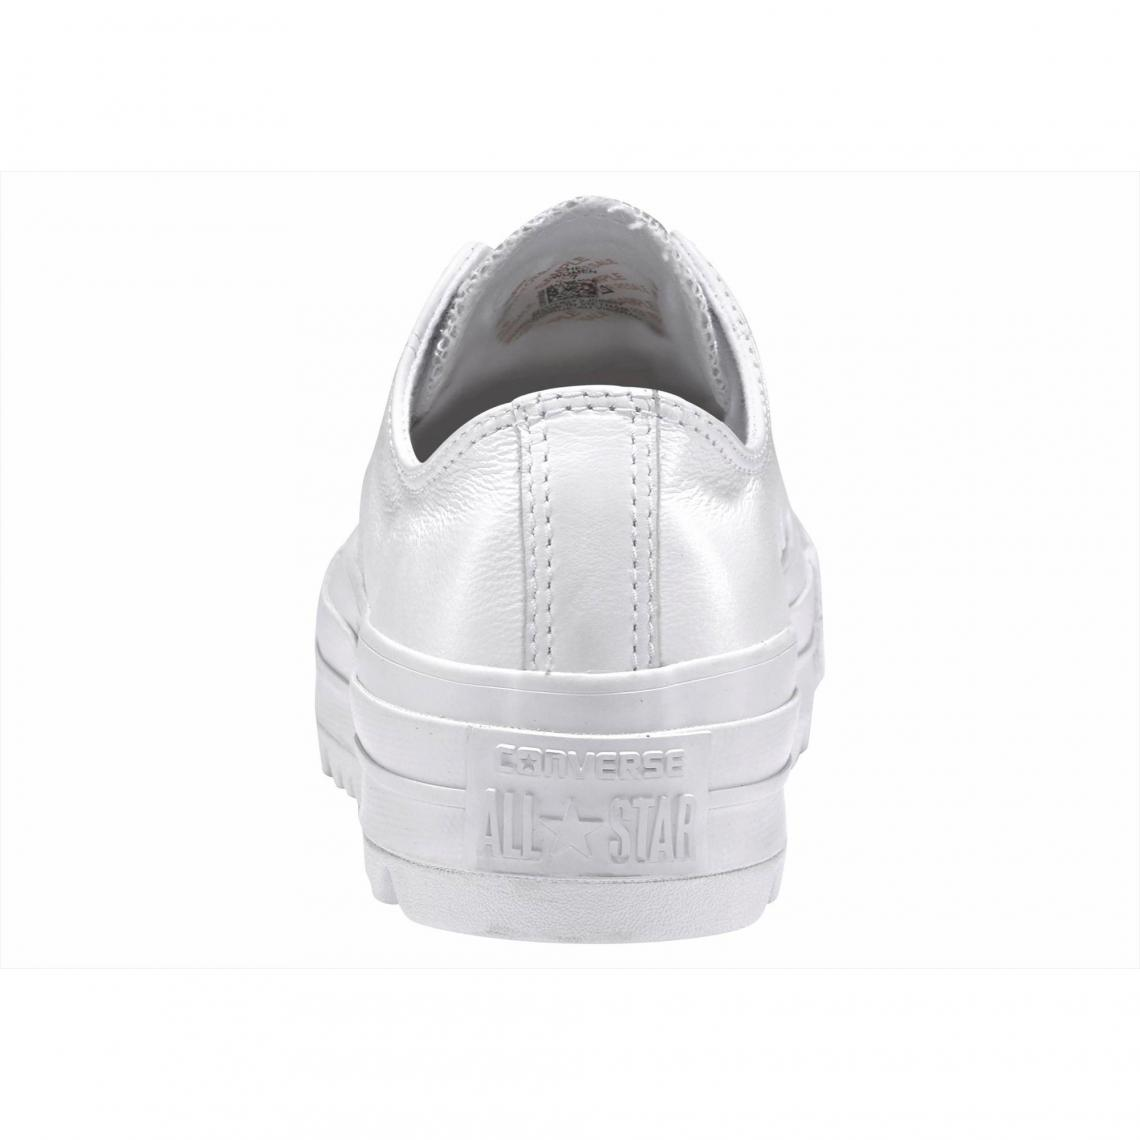 Sneakers basses Converse Chuck Taylor All Star Lift ripple-Ox femme - Blanc  Converse 3c7df613a727